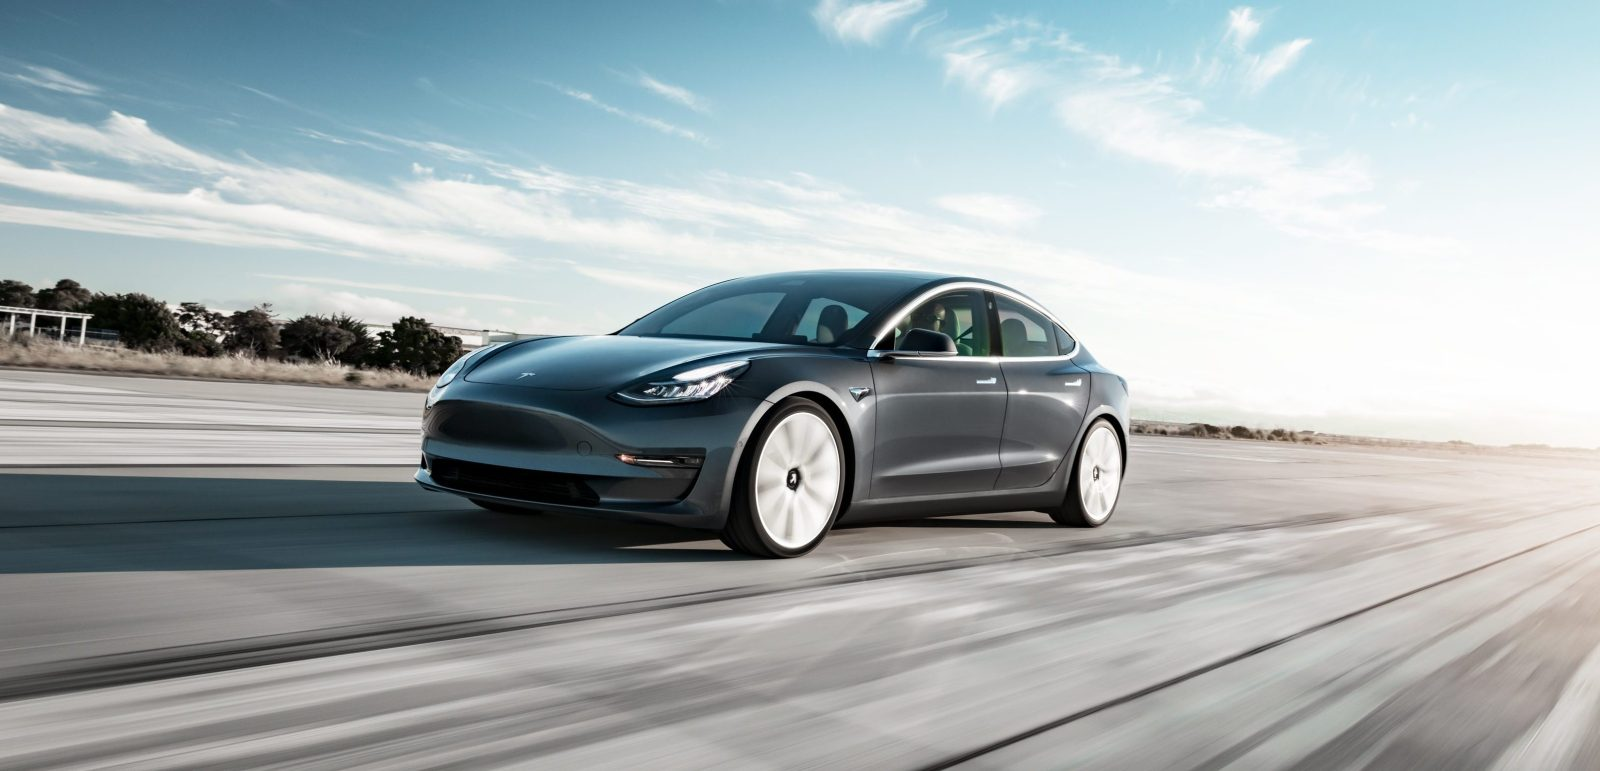 Tesla Model 3 is putting pressure on the market', admits BMW